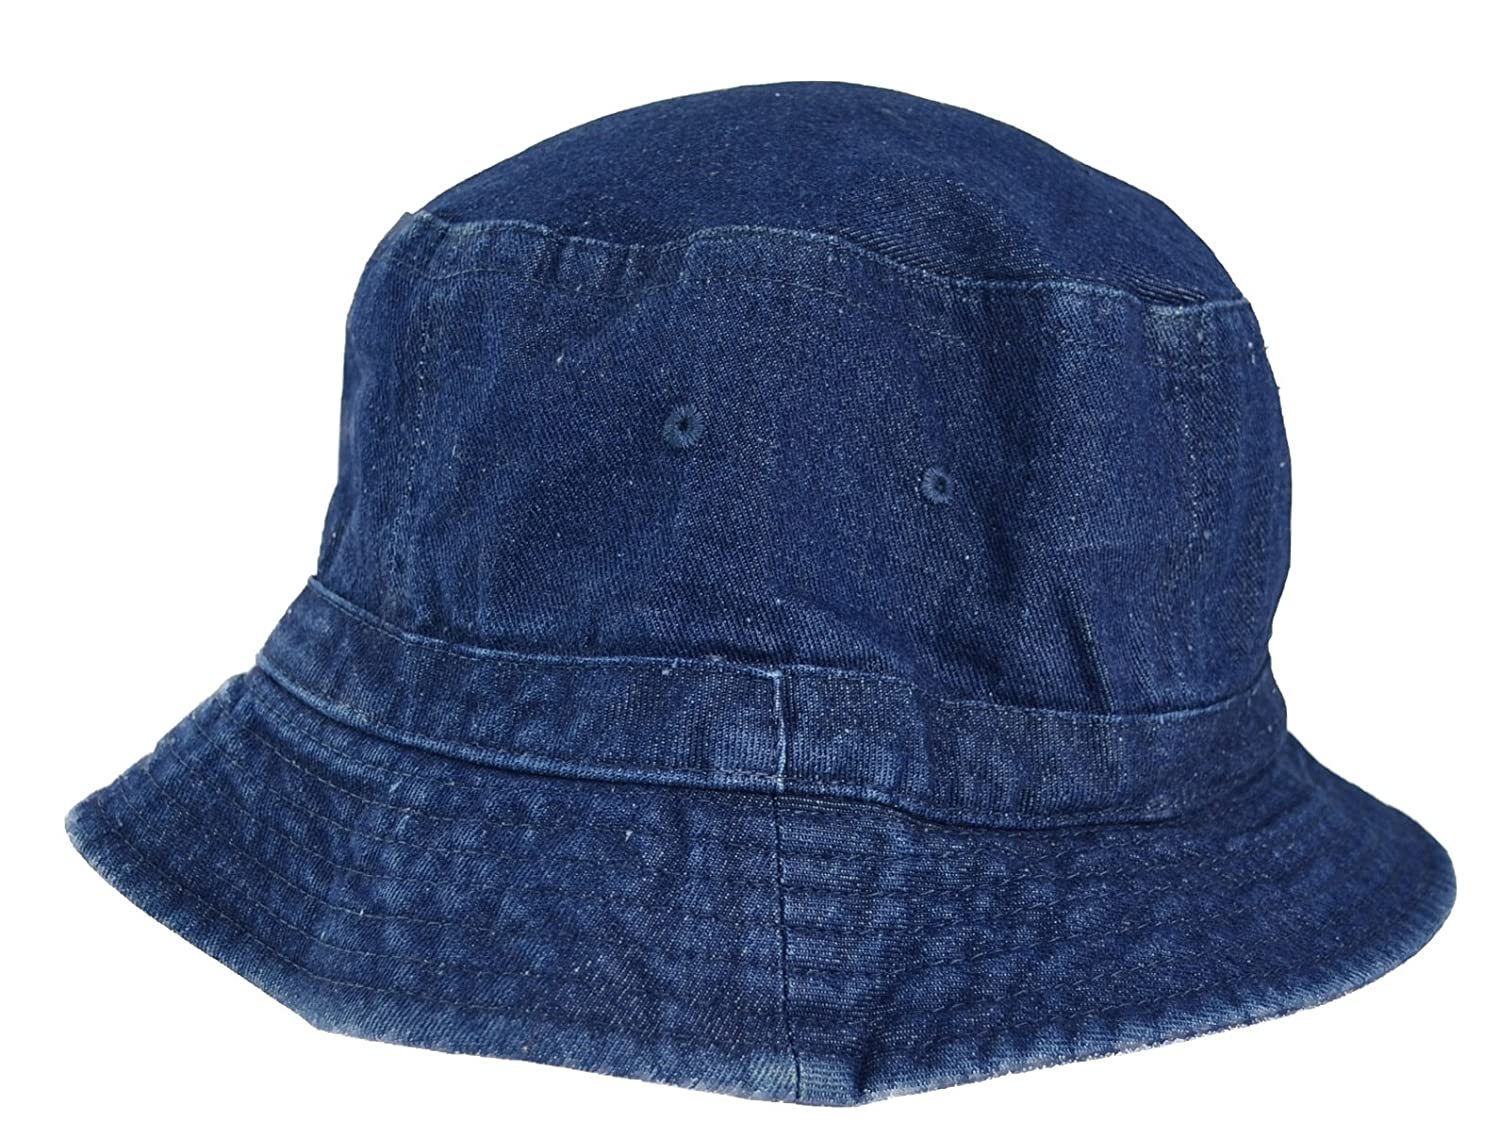 Denim Bucket Hat for Men - Lg XL at Amazon Men s Clothing store  Hat Fishing 25a82f372c1